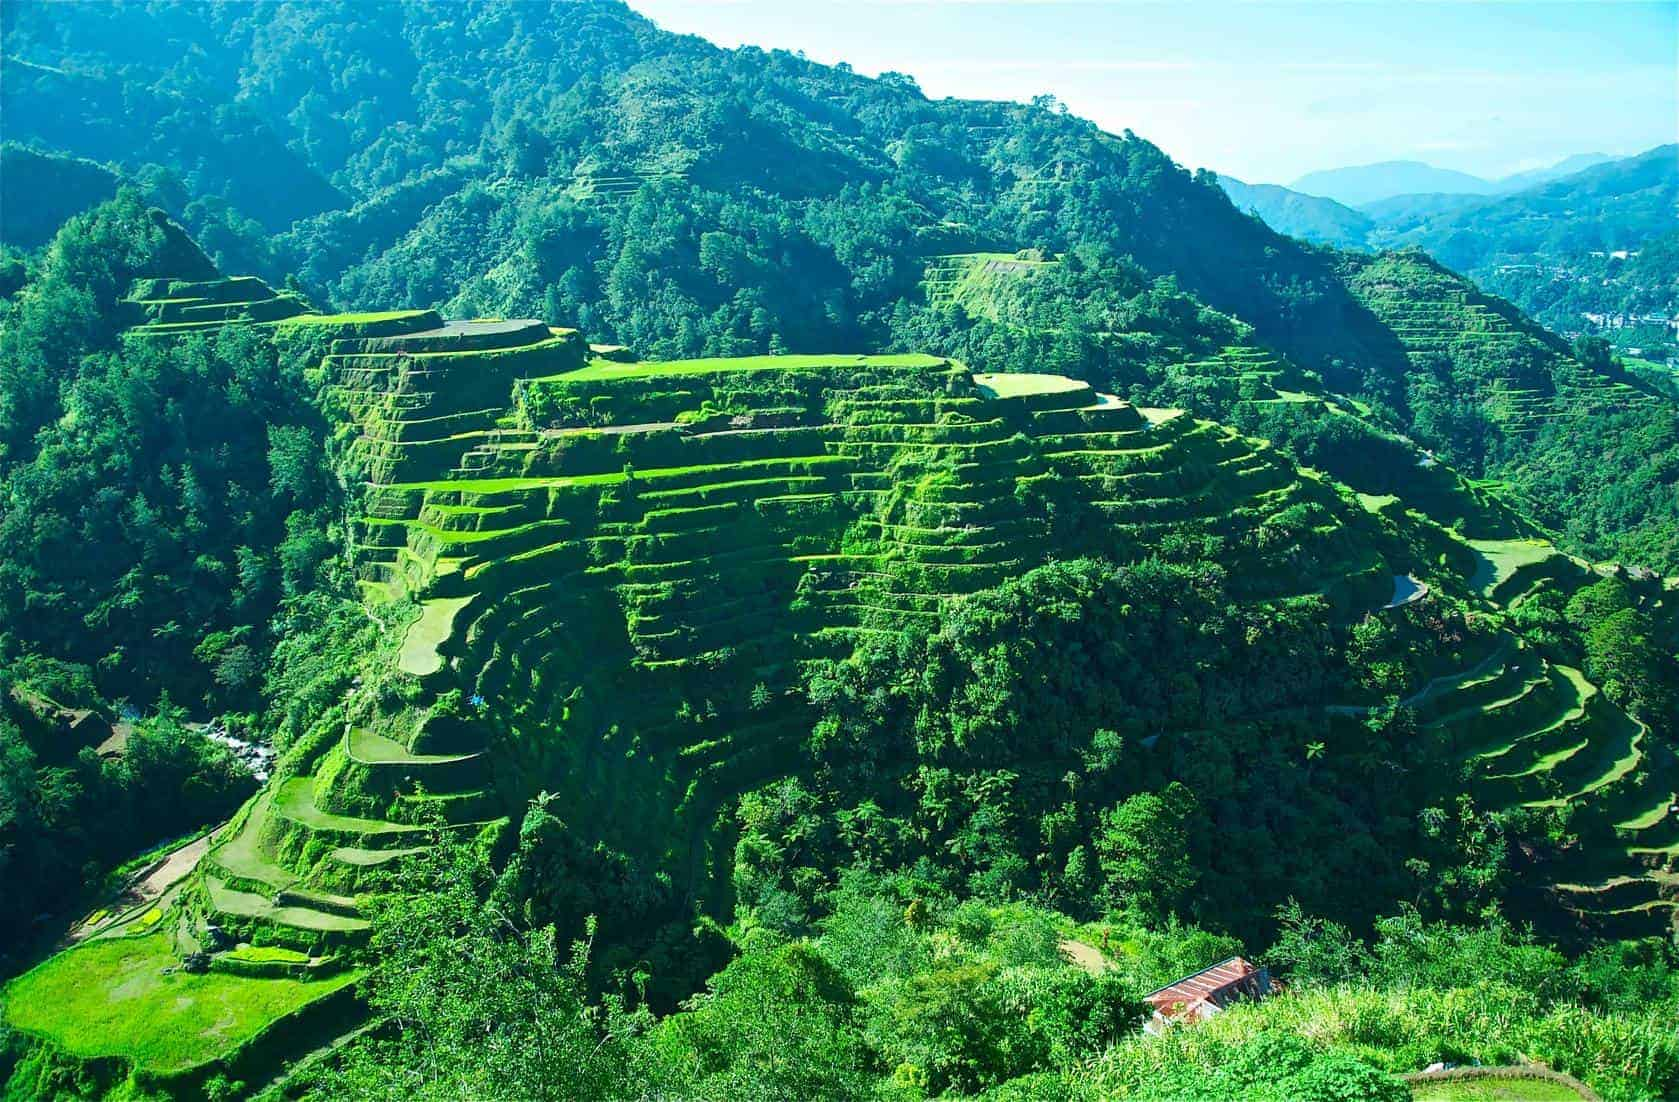 The amazing UNESCO World Heritage Banaue Rice Terraces